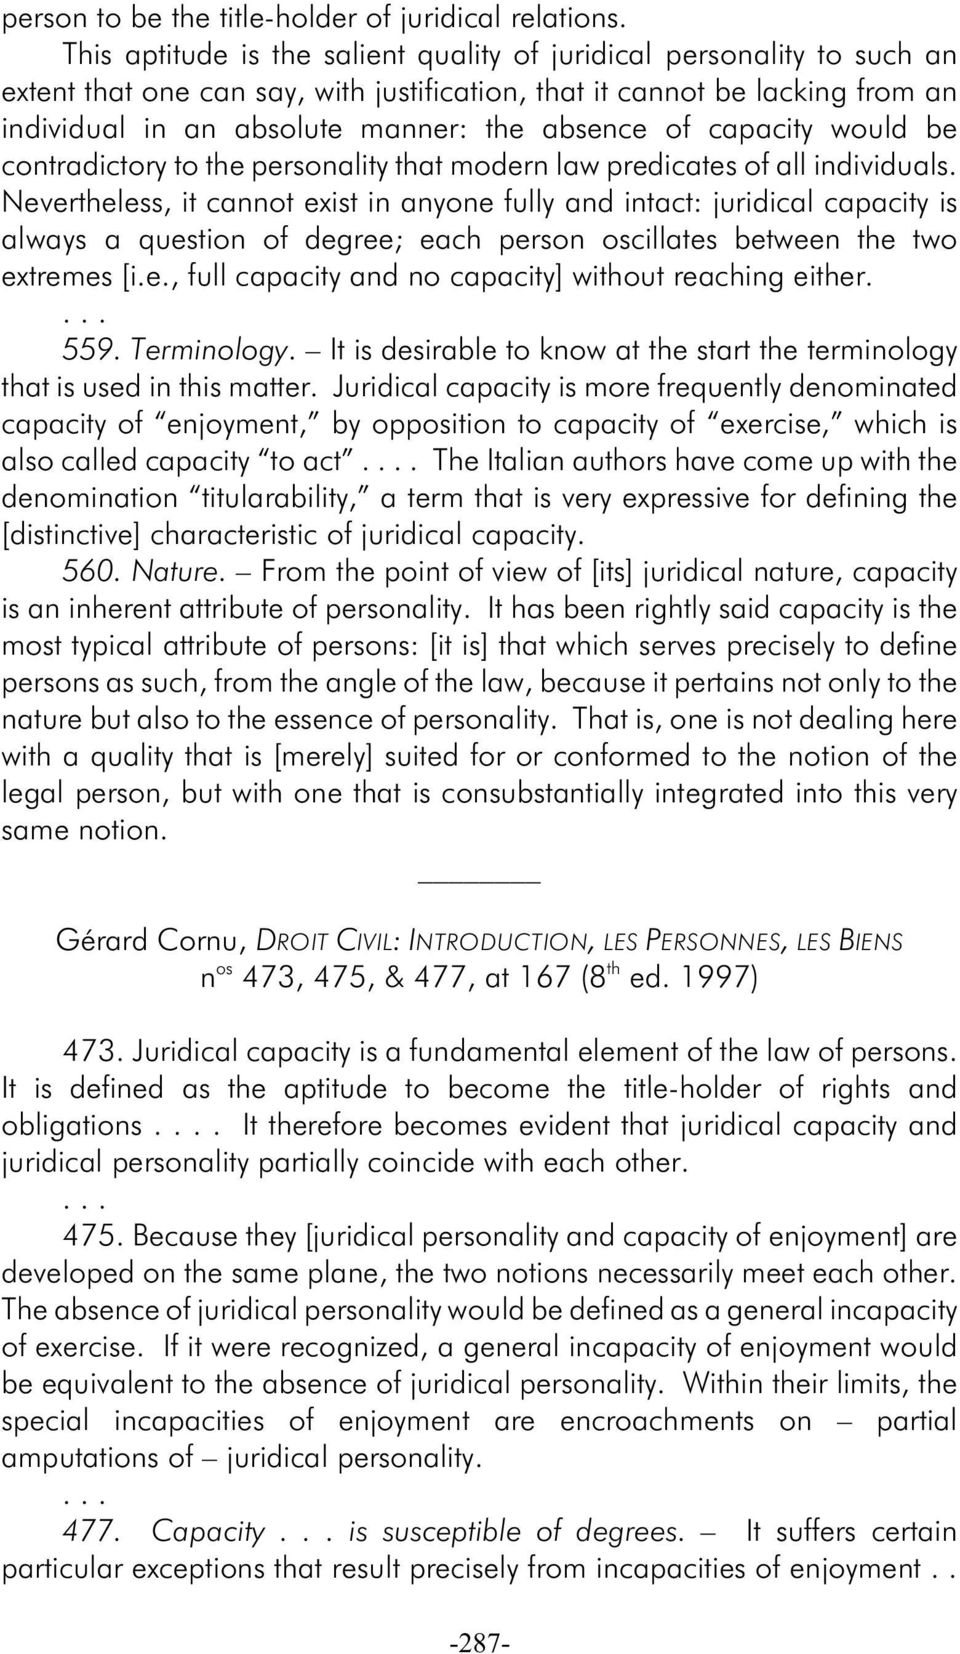 would be contradictory to e personality at modern law predicates of all individuals.